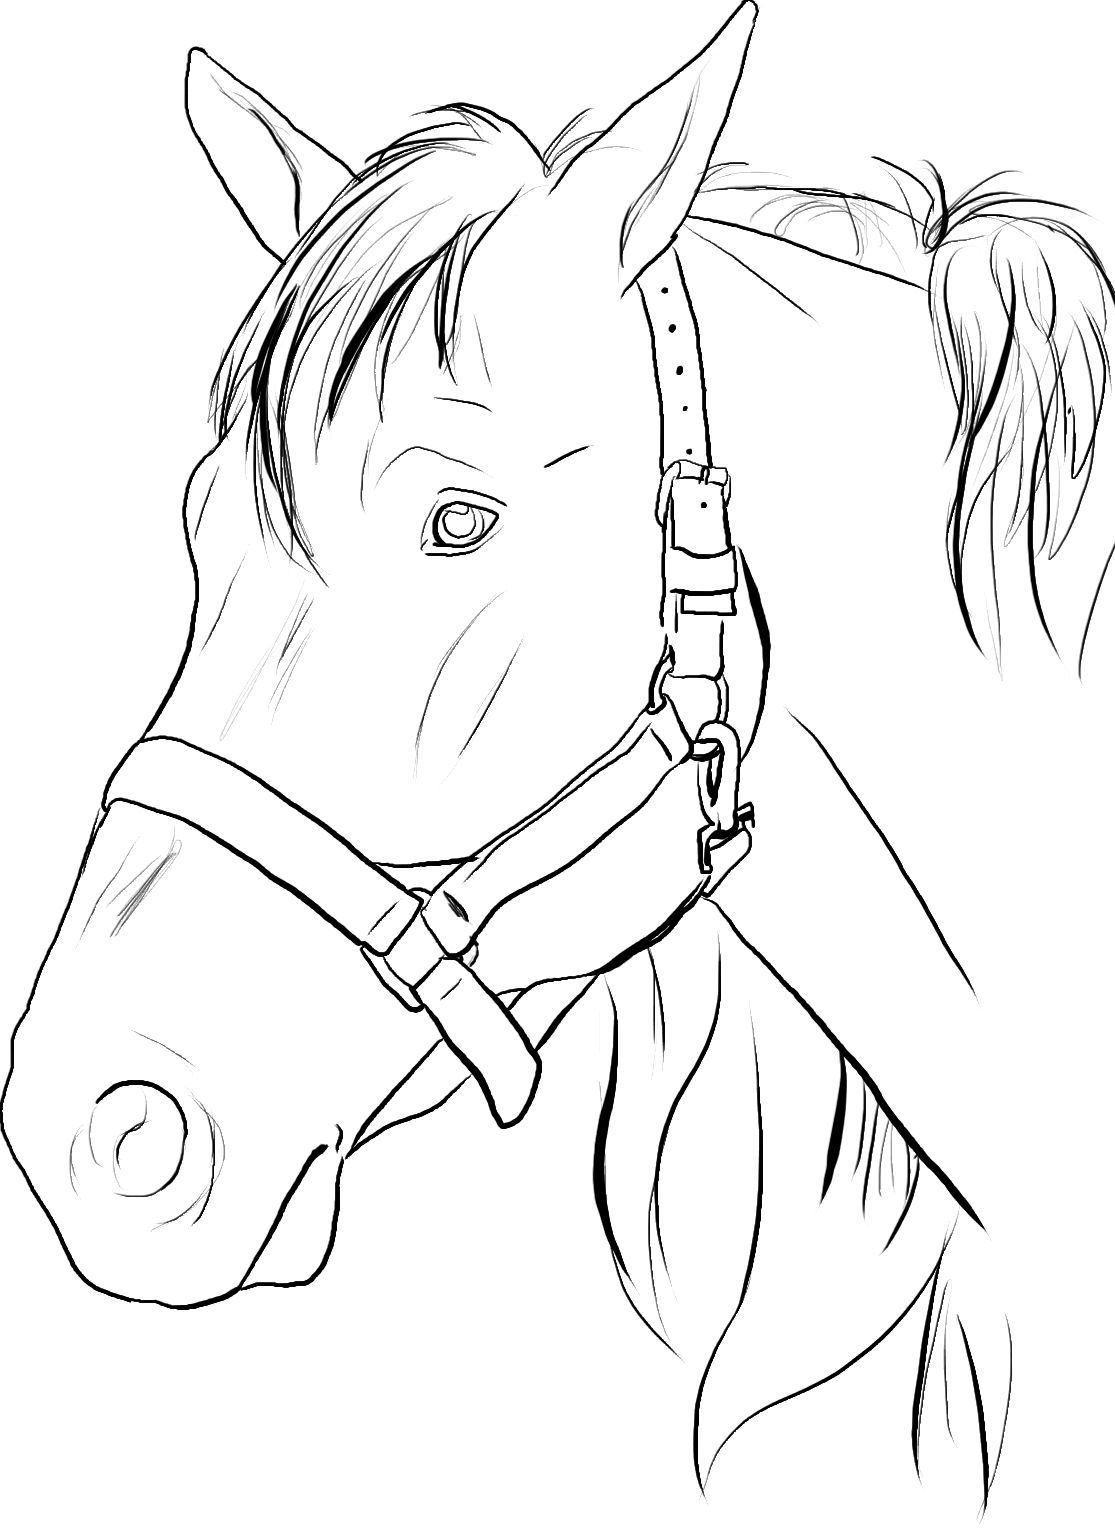 Horse Coloring Pages Horse Coloring Pages Coloring Pages